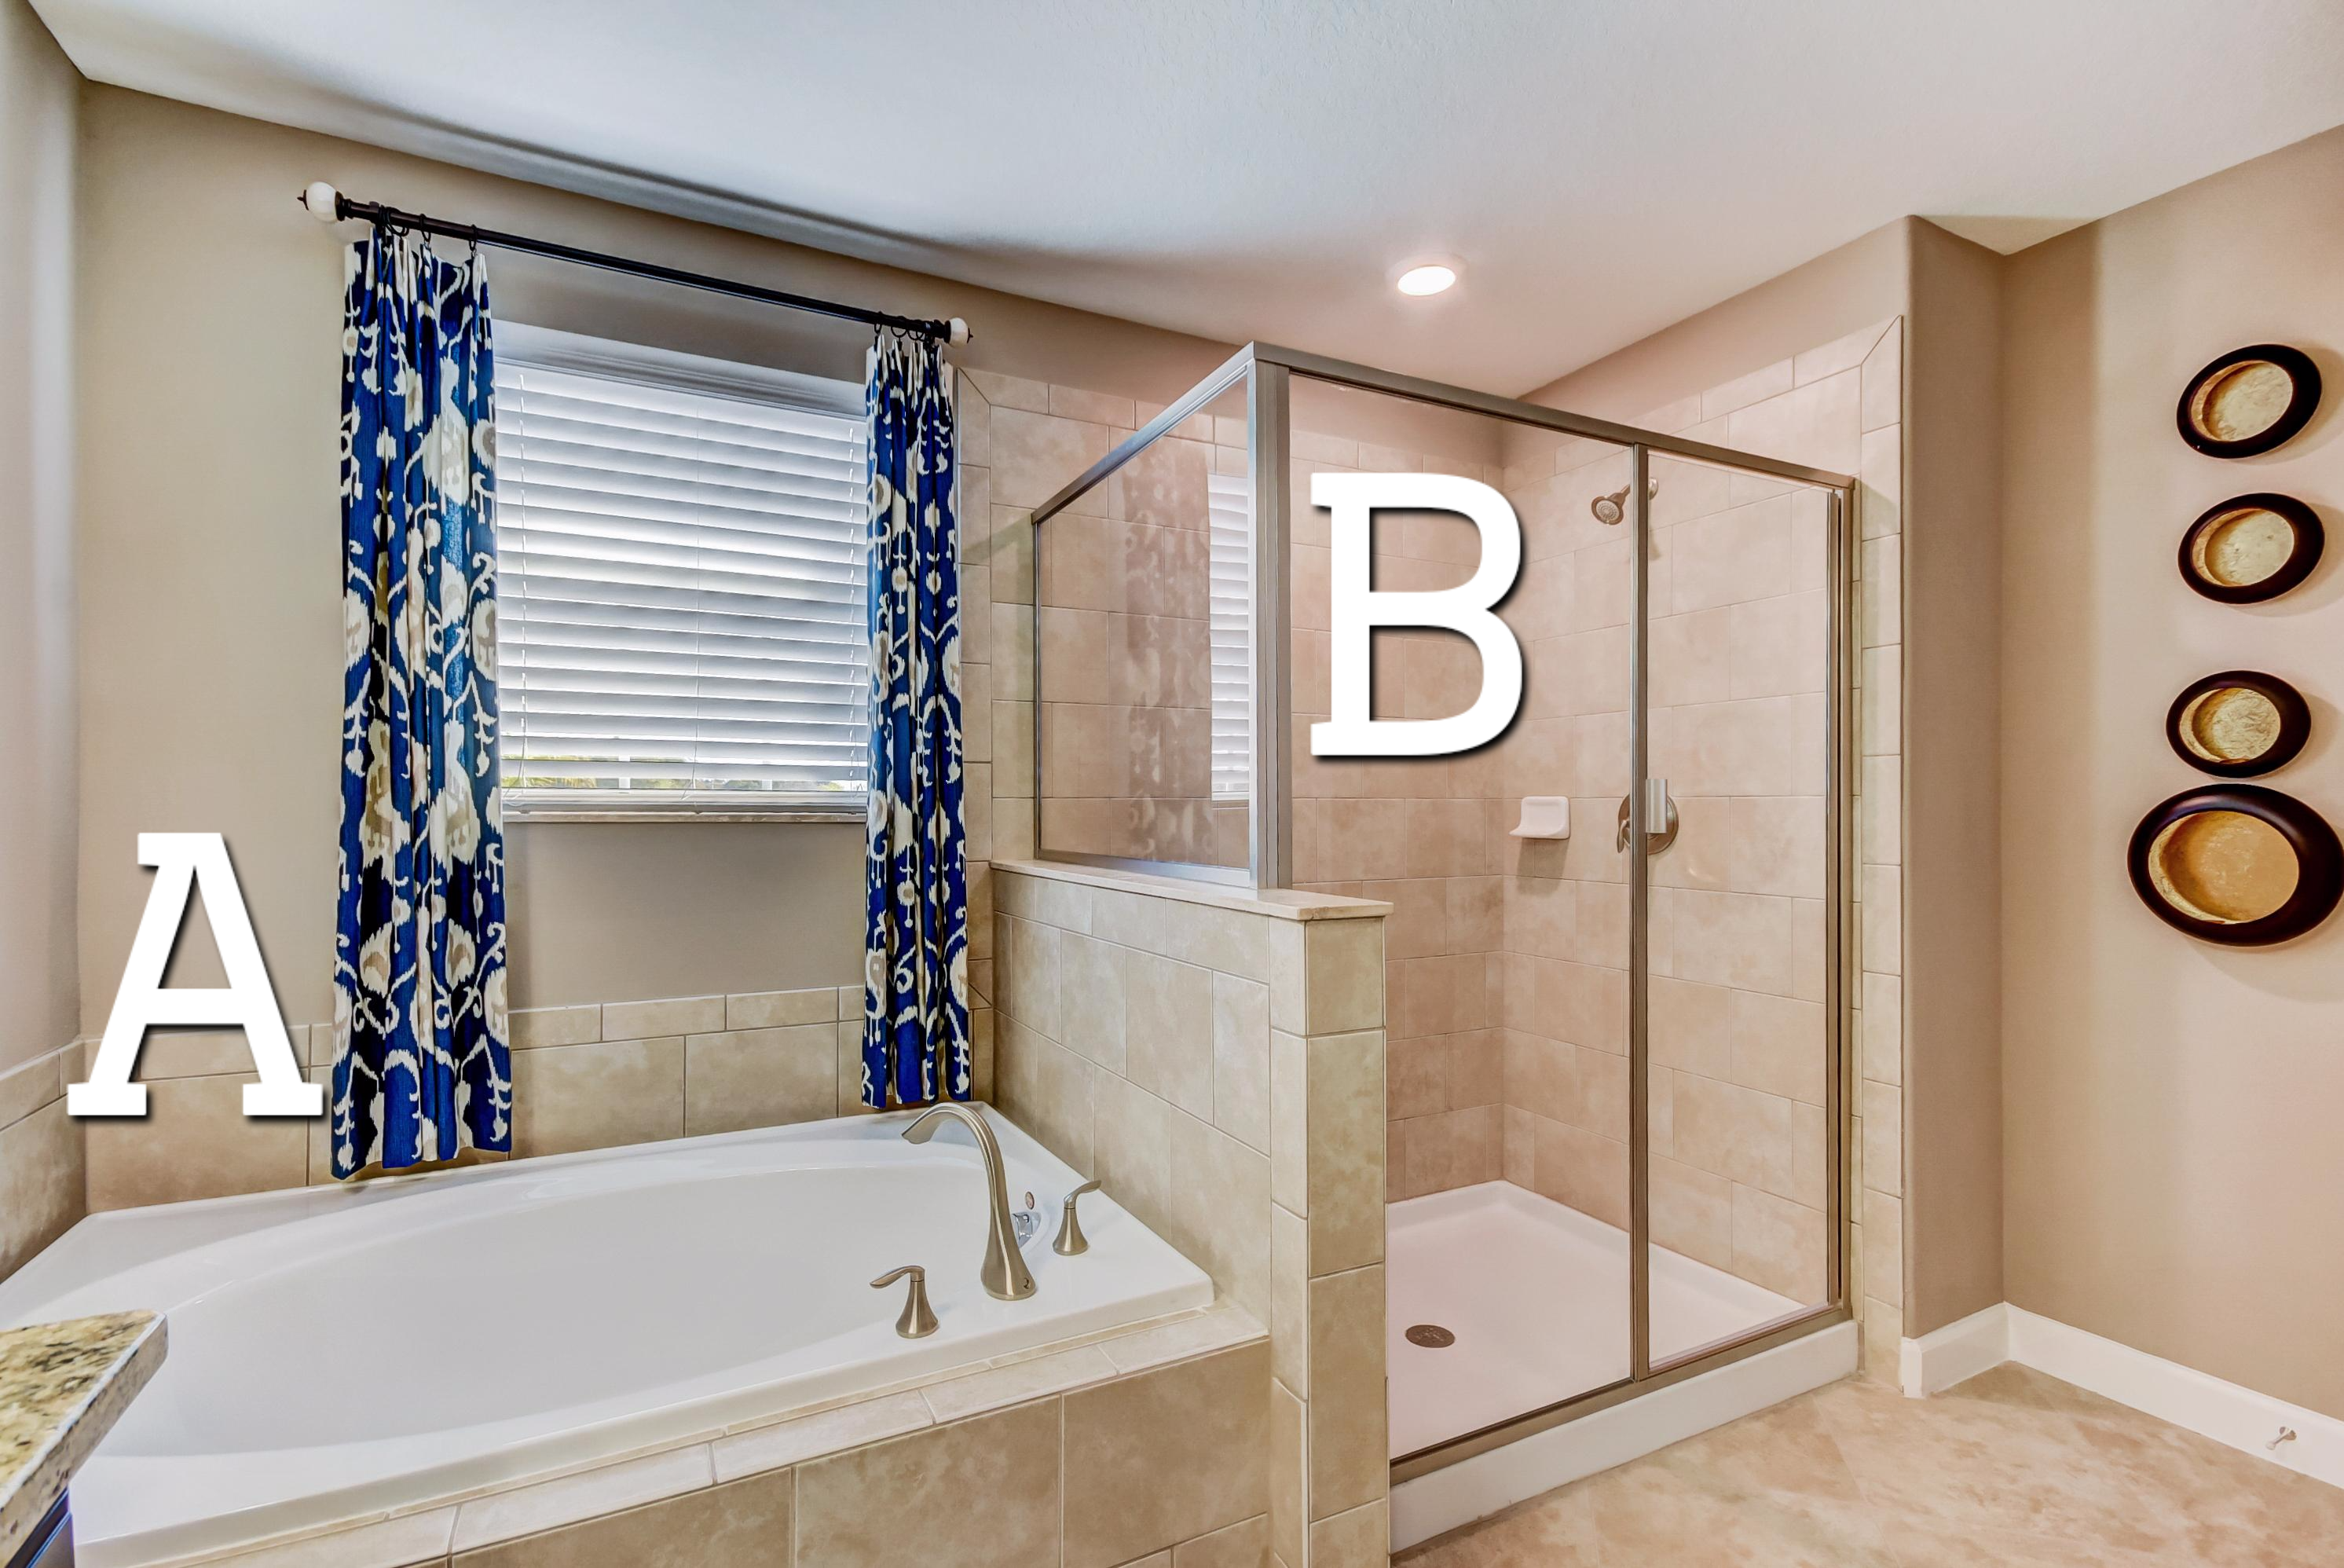 Which feature do you prefer in this master bathroom? A. The garden ...